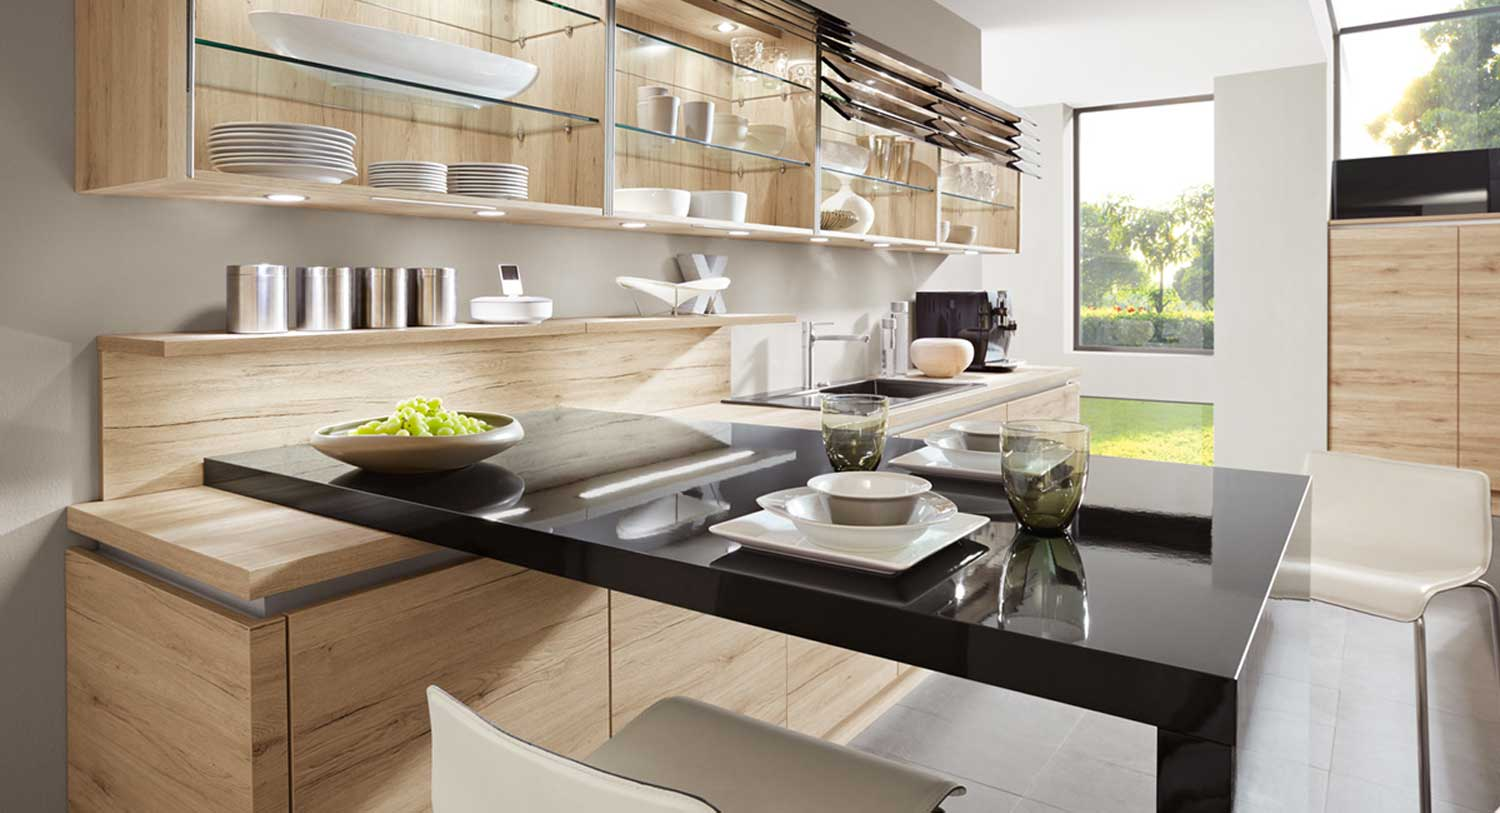 Cucine componibili bologna affordable beautiful cucine